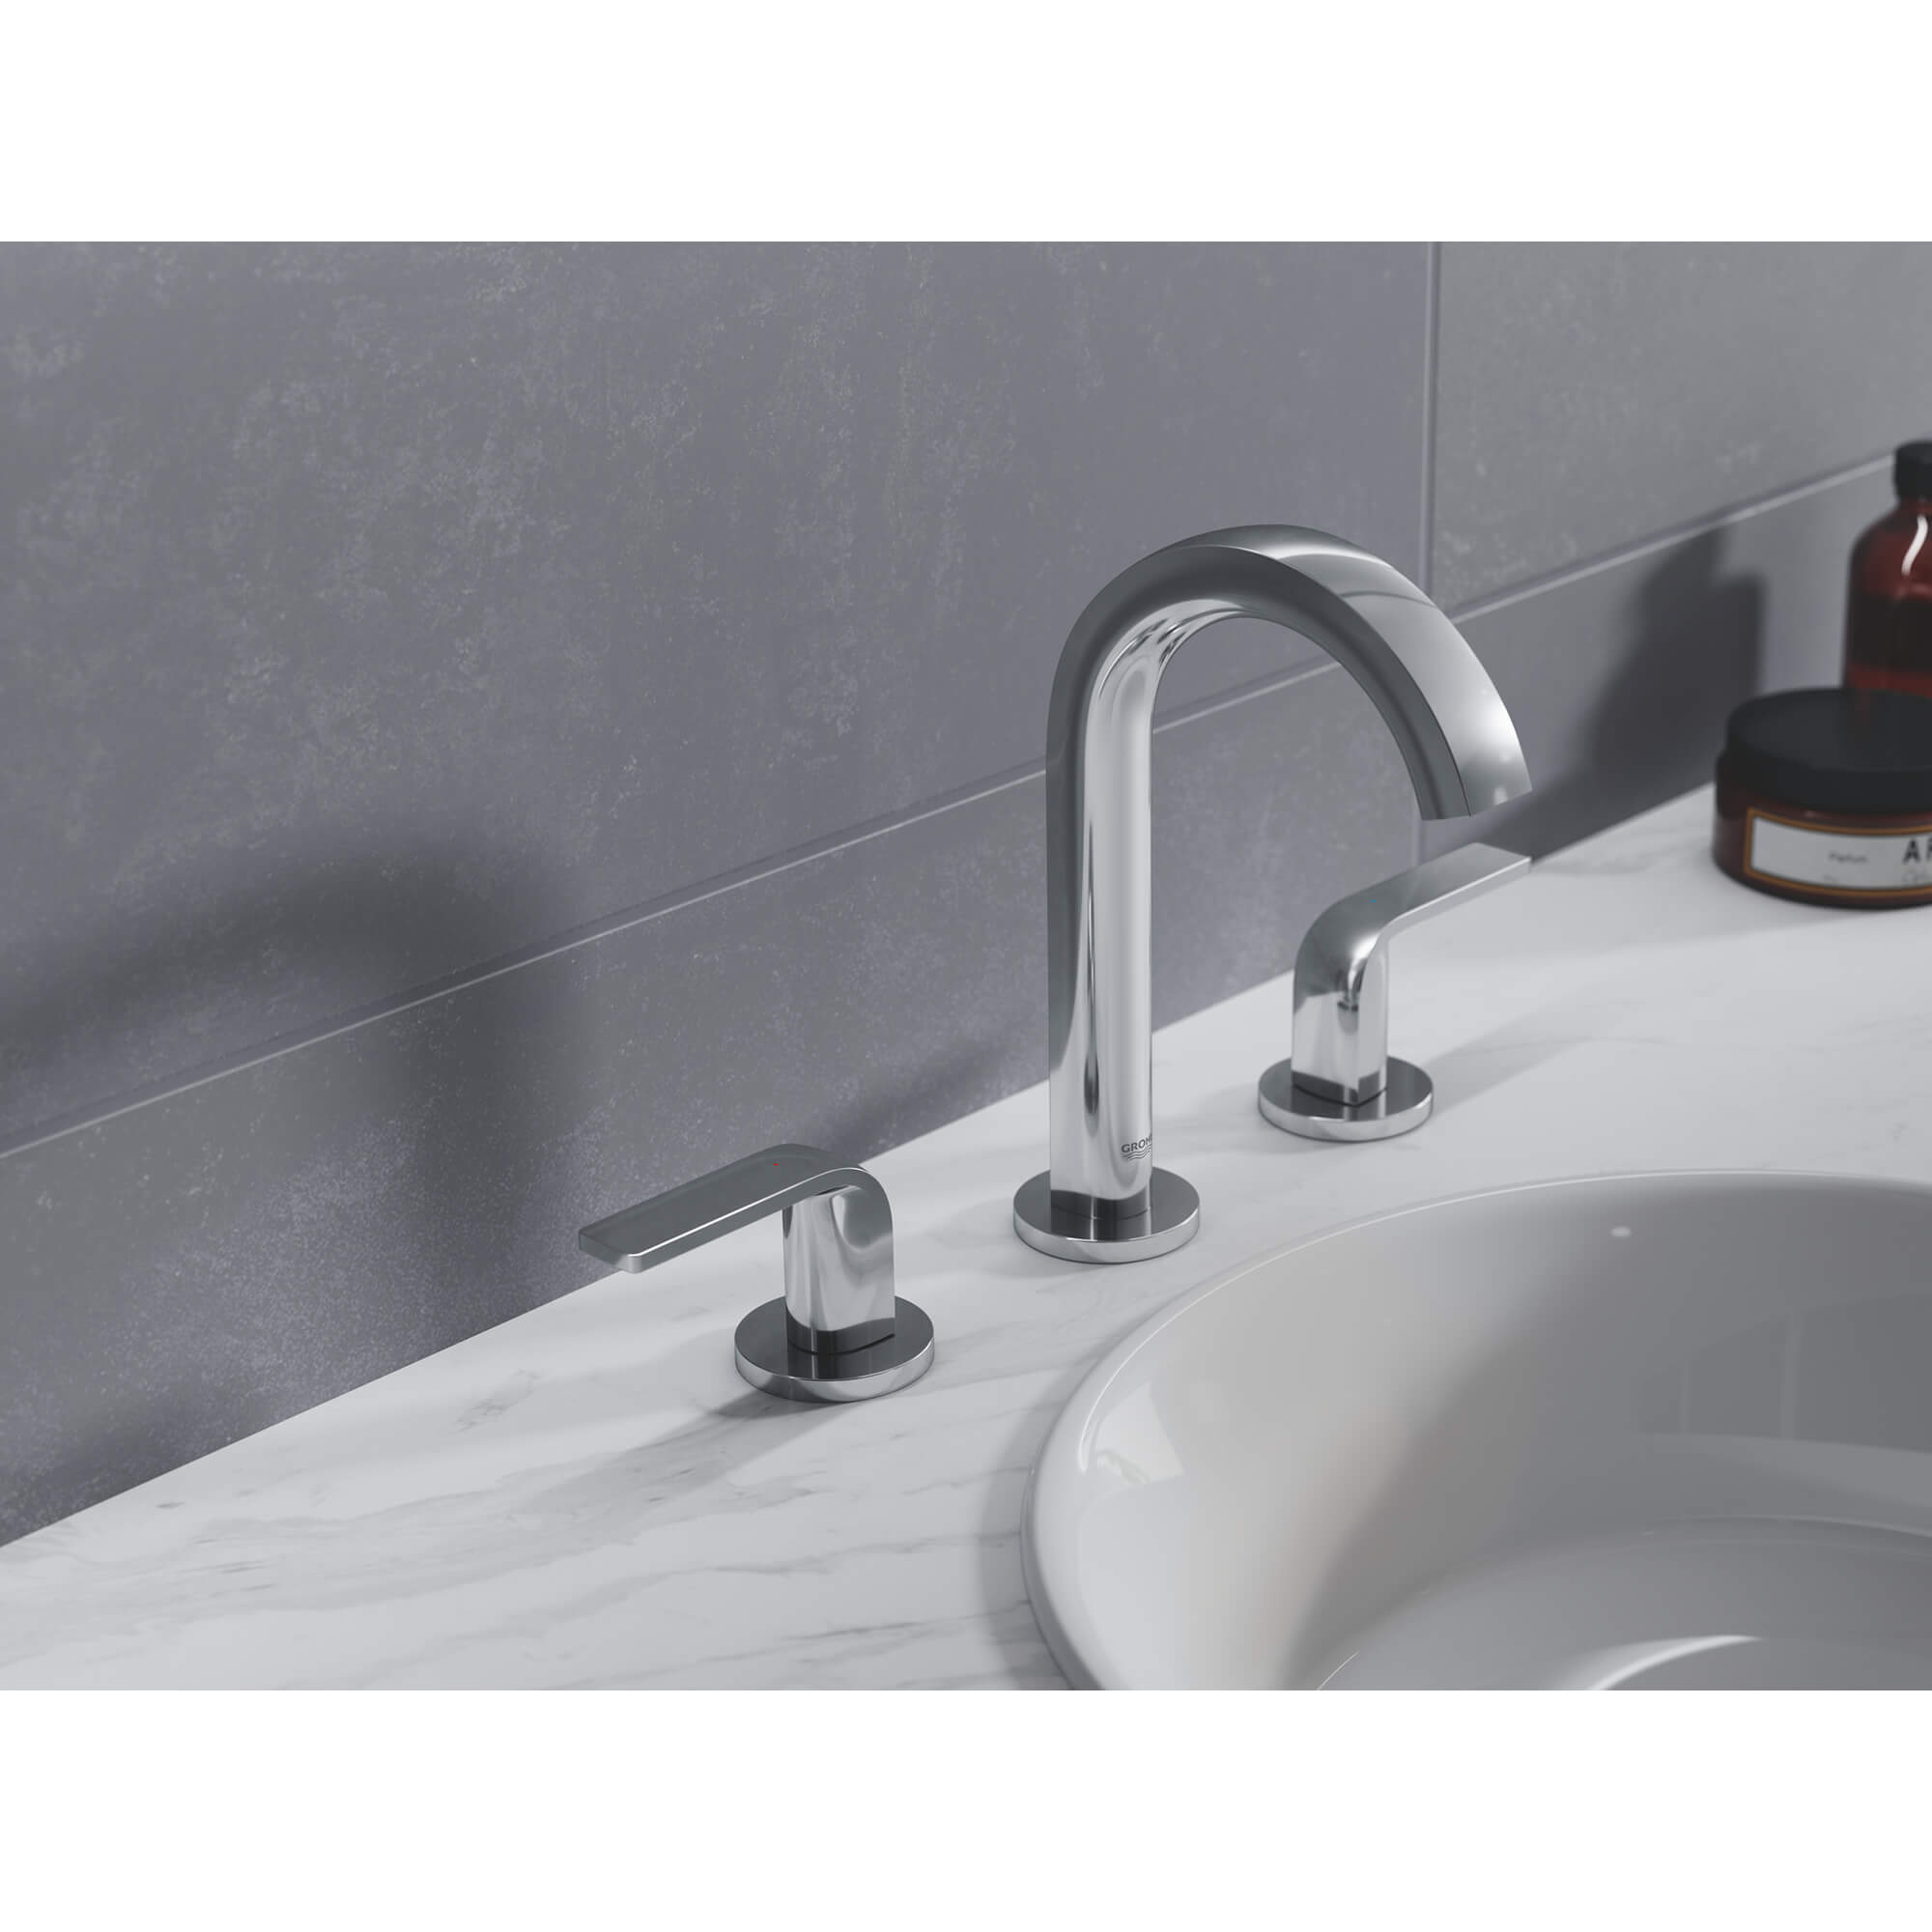 8 inch widespread 2 handle m size bathroom faucet 1 2 gpm